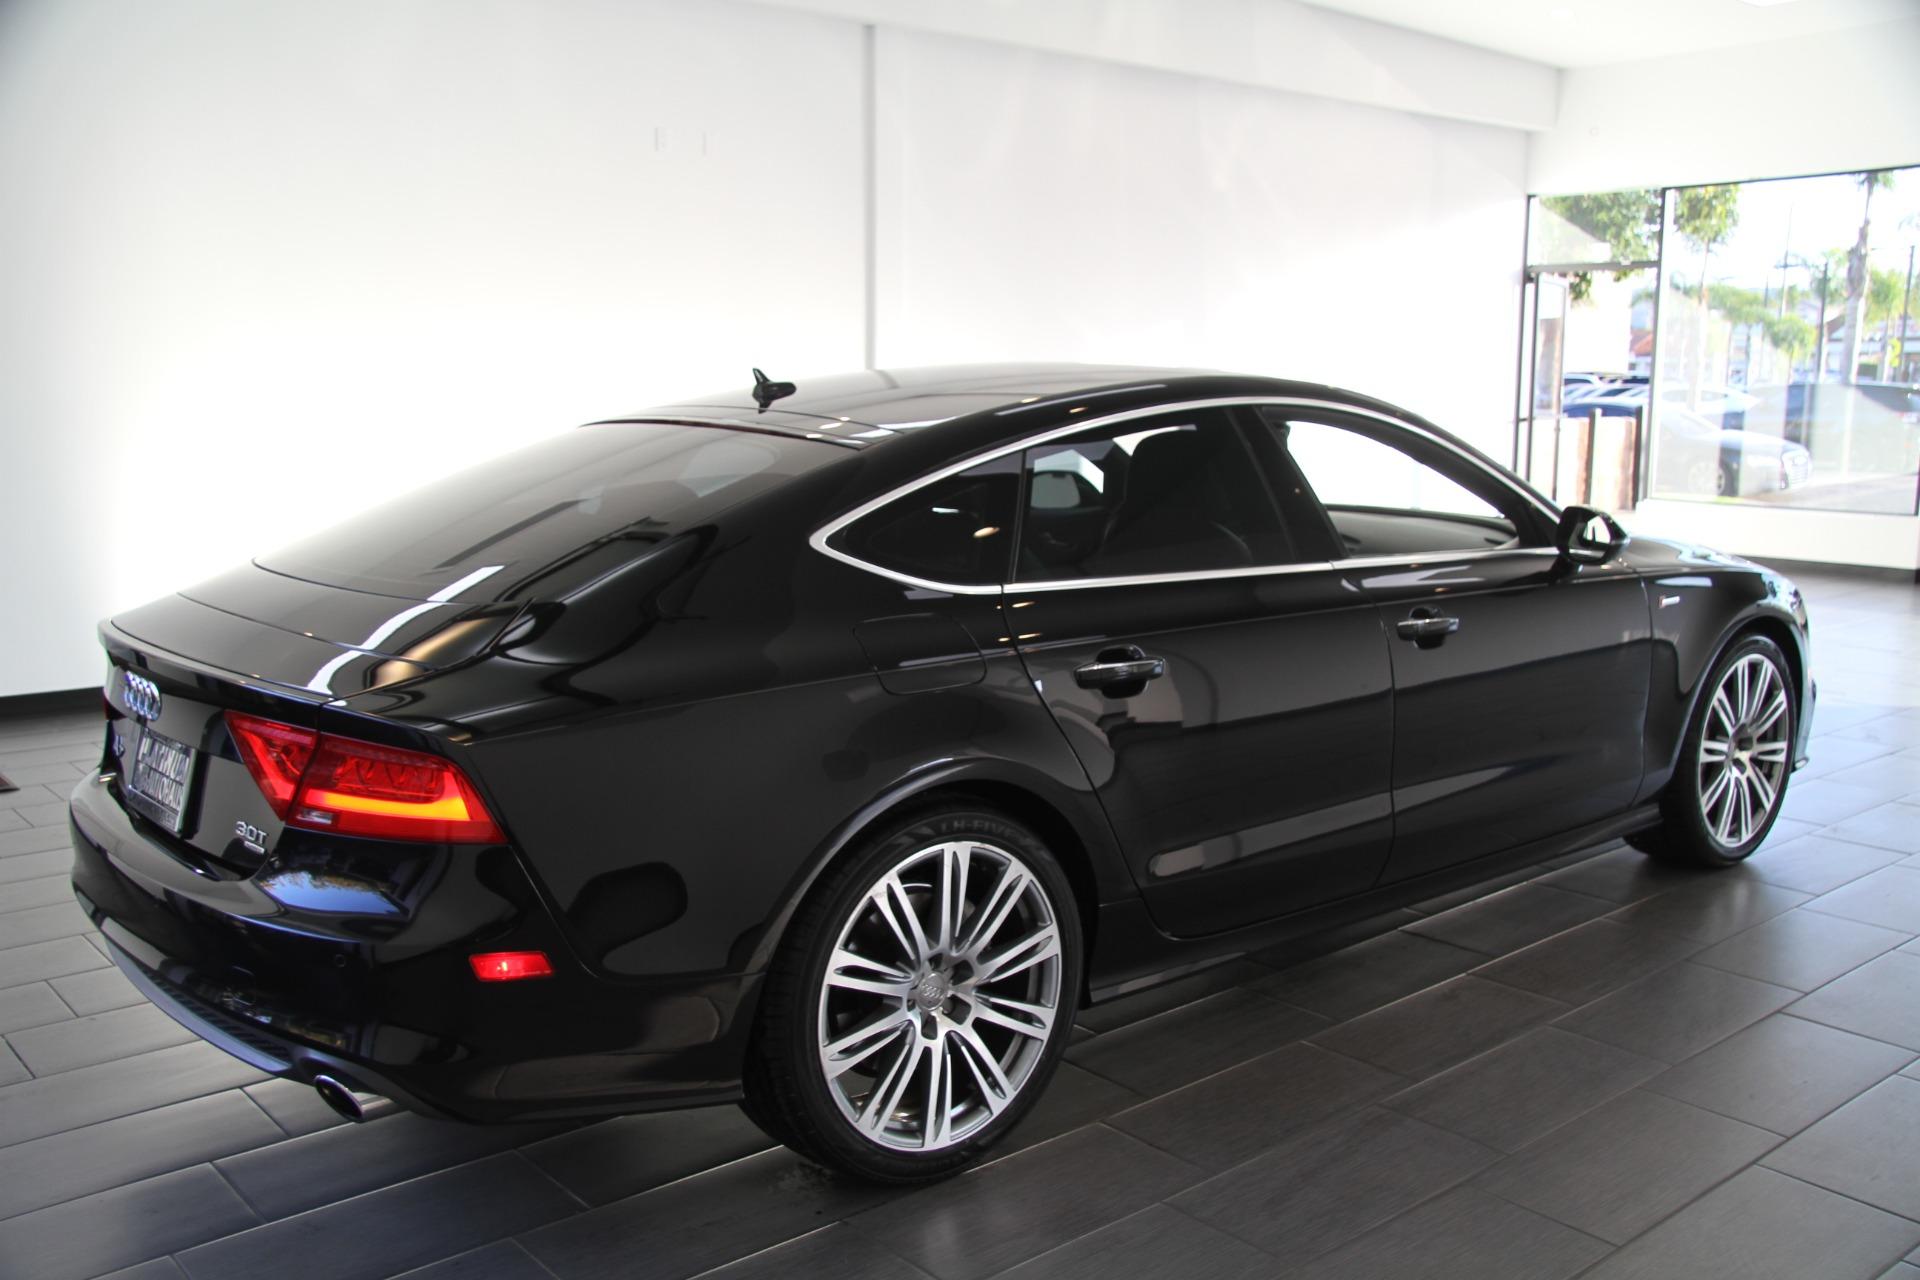 2013 Audi A7 3.0T quattro Prestige S-Line Stock # 6106 for sale near Redondo Beach, CA | CA Audi ...